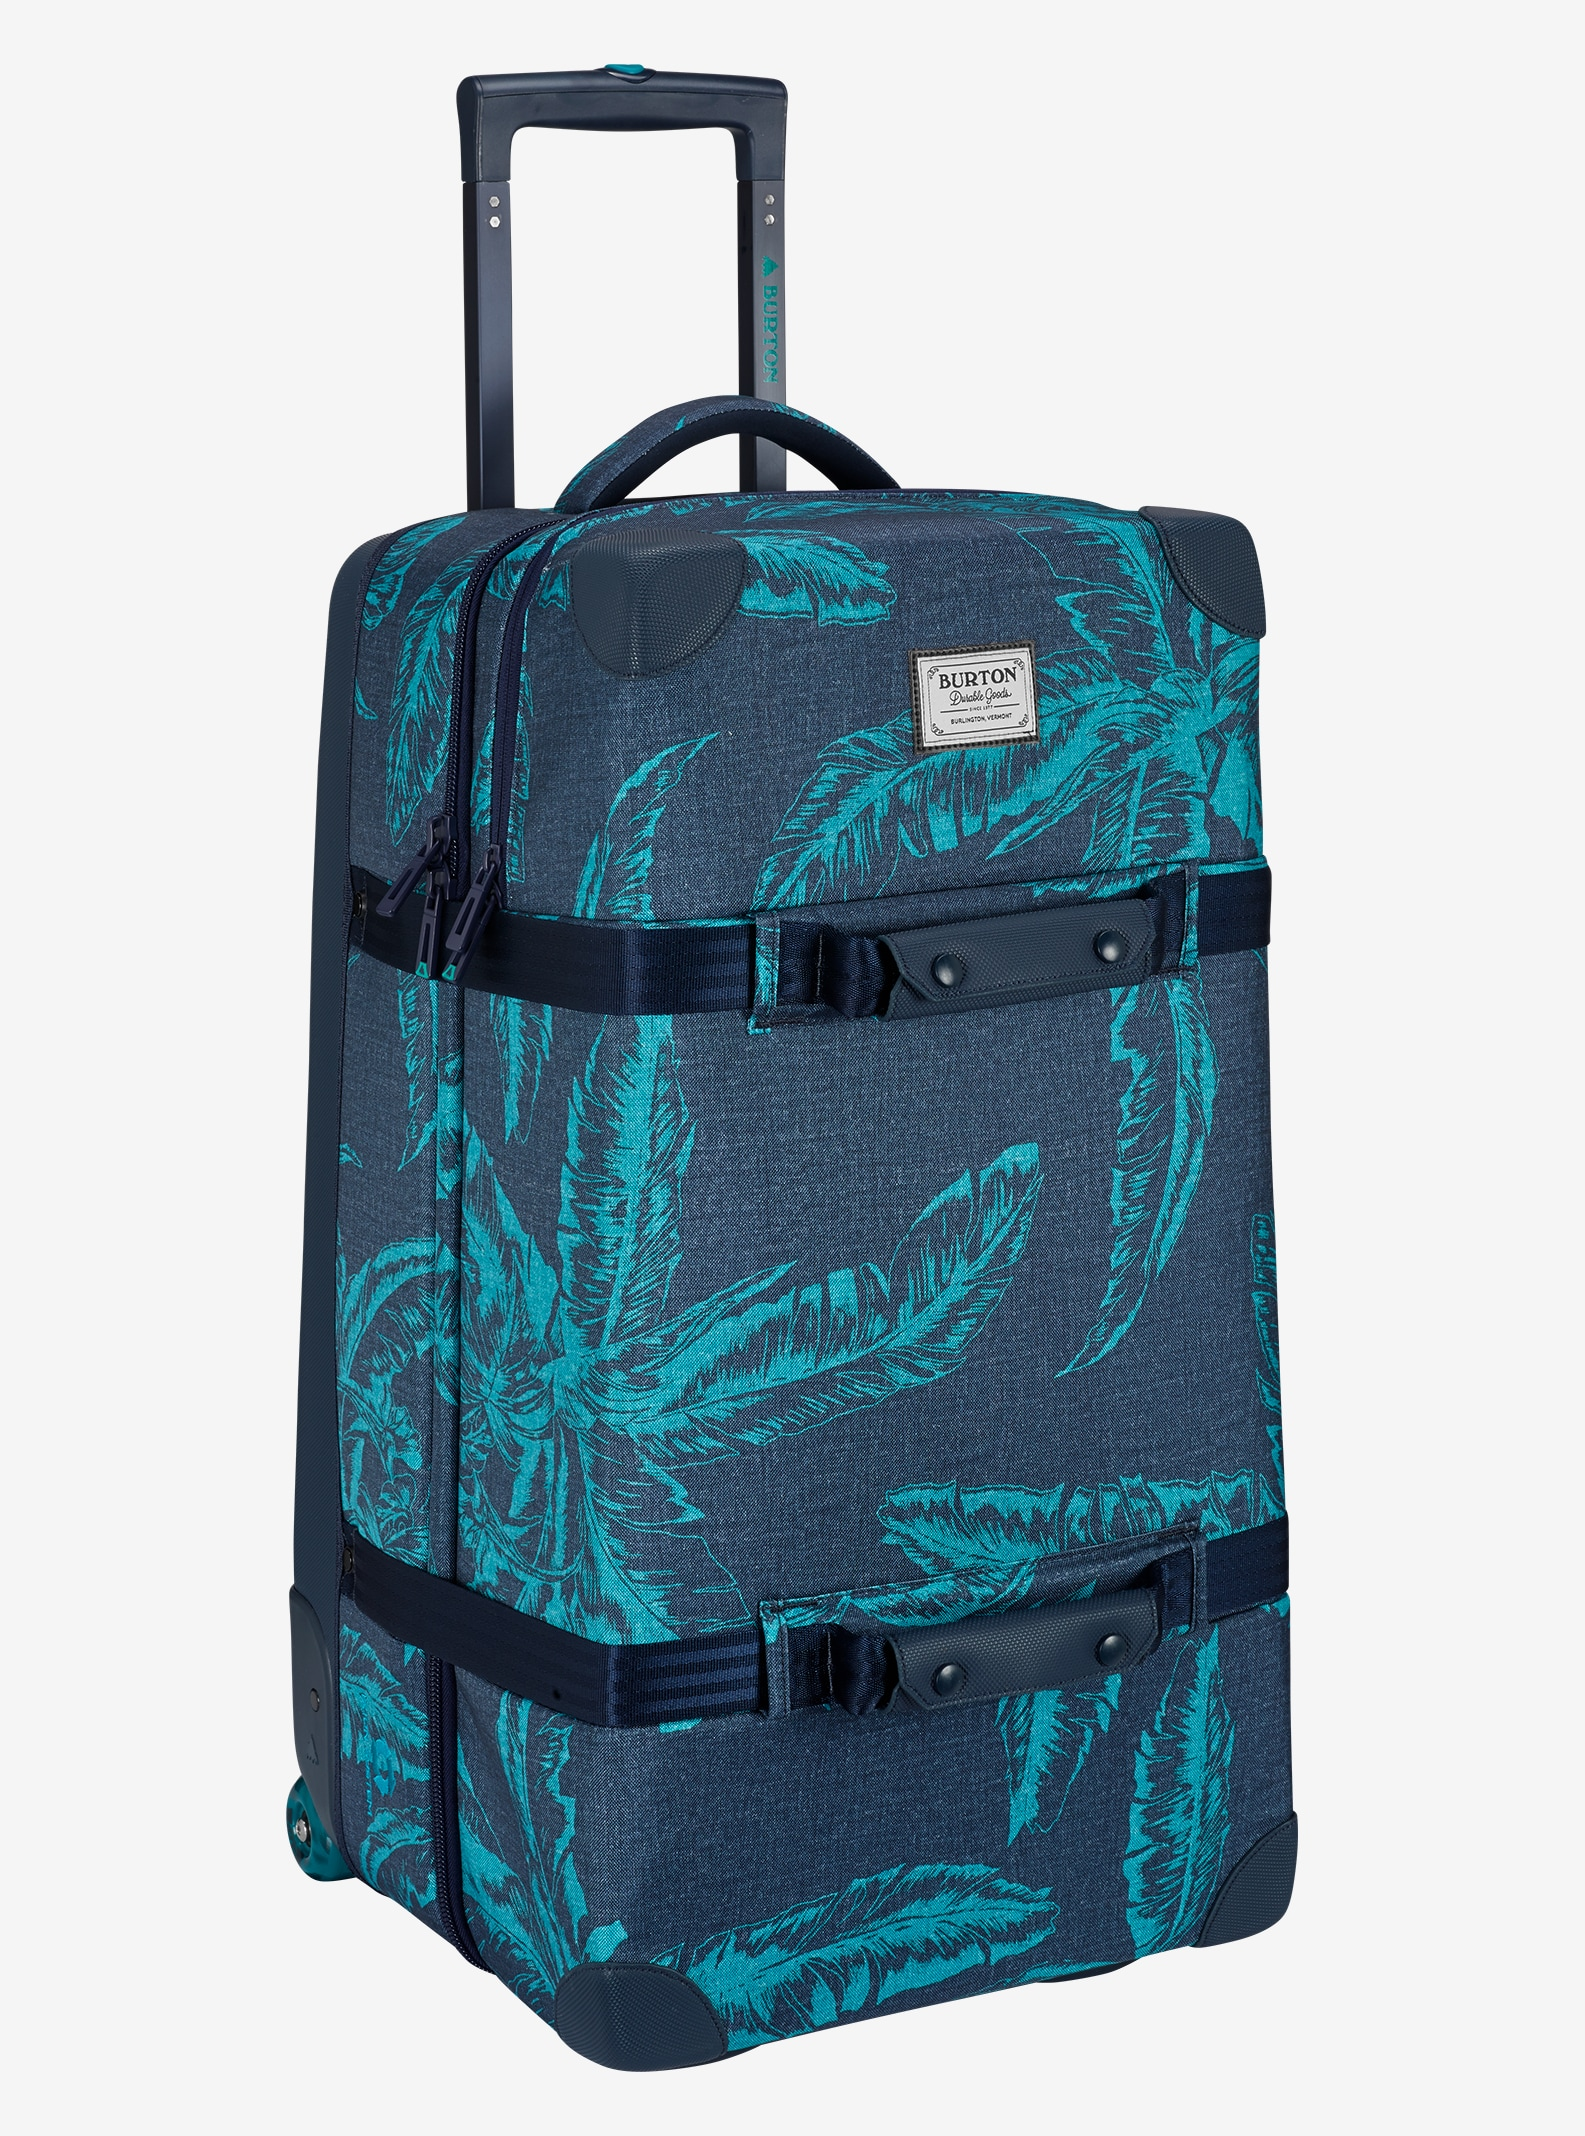 Burton Wheelie Double Deck Travel Bag shown in Tropical Print